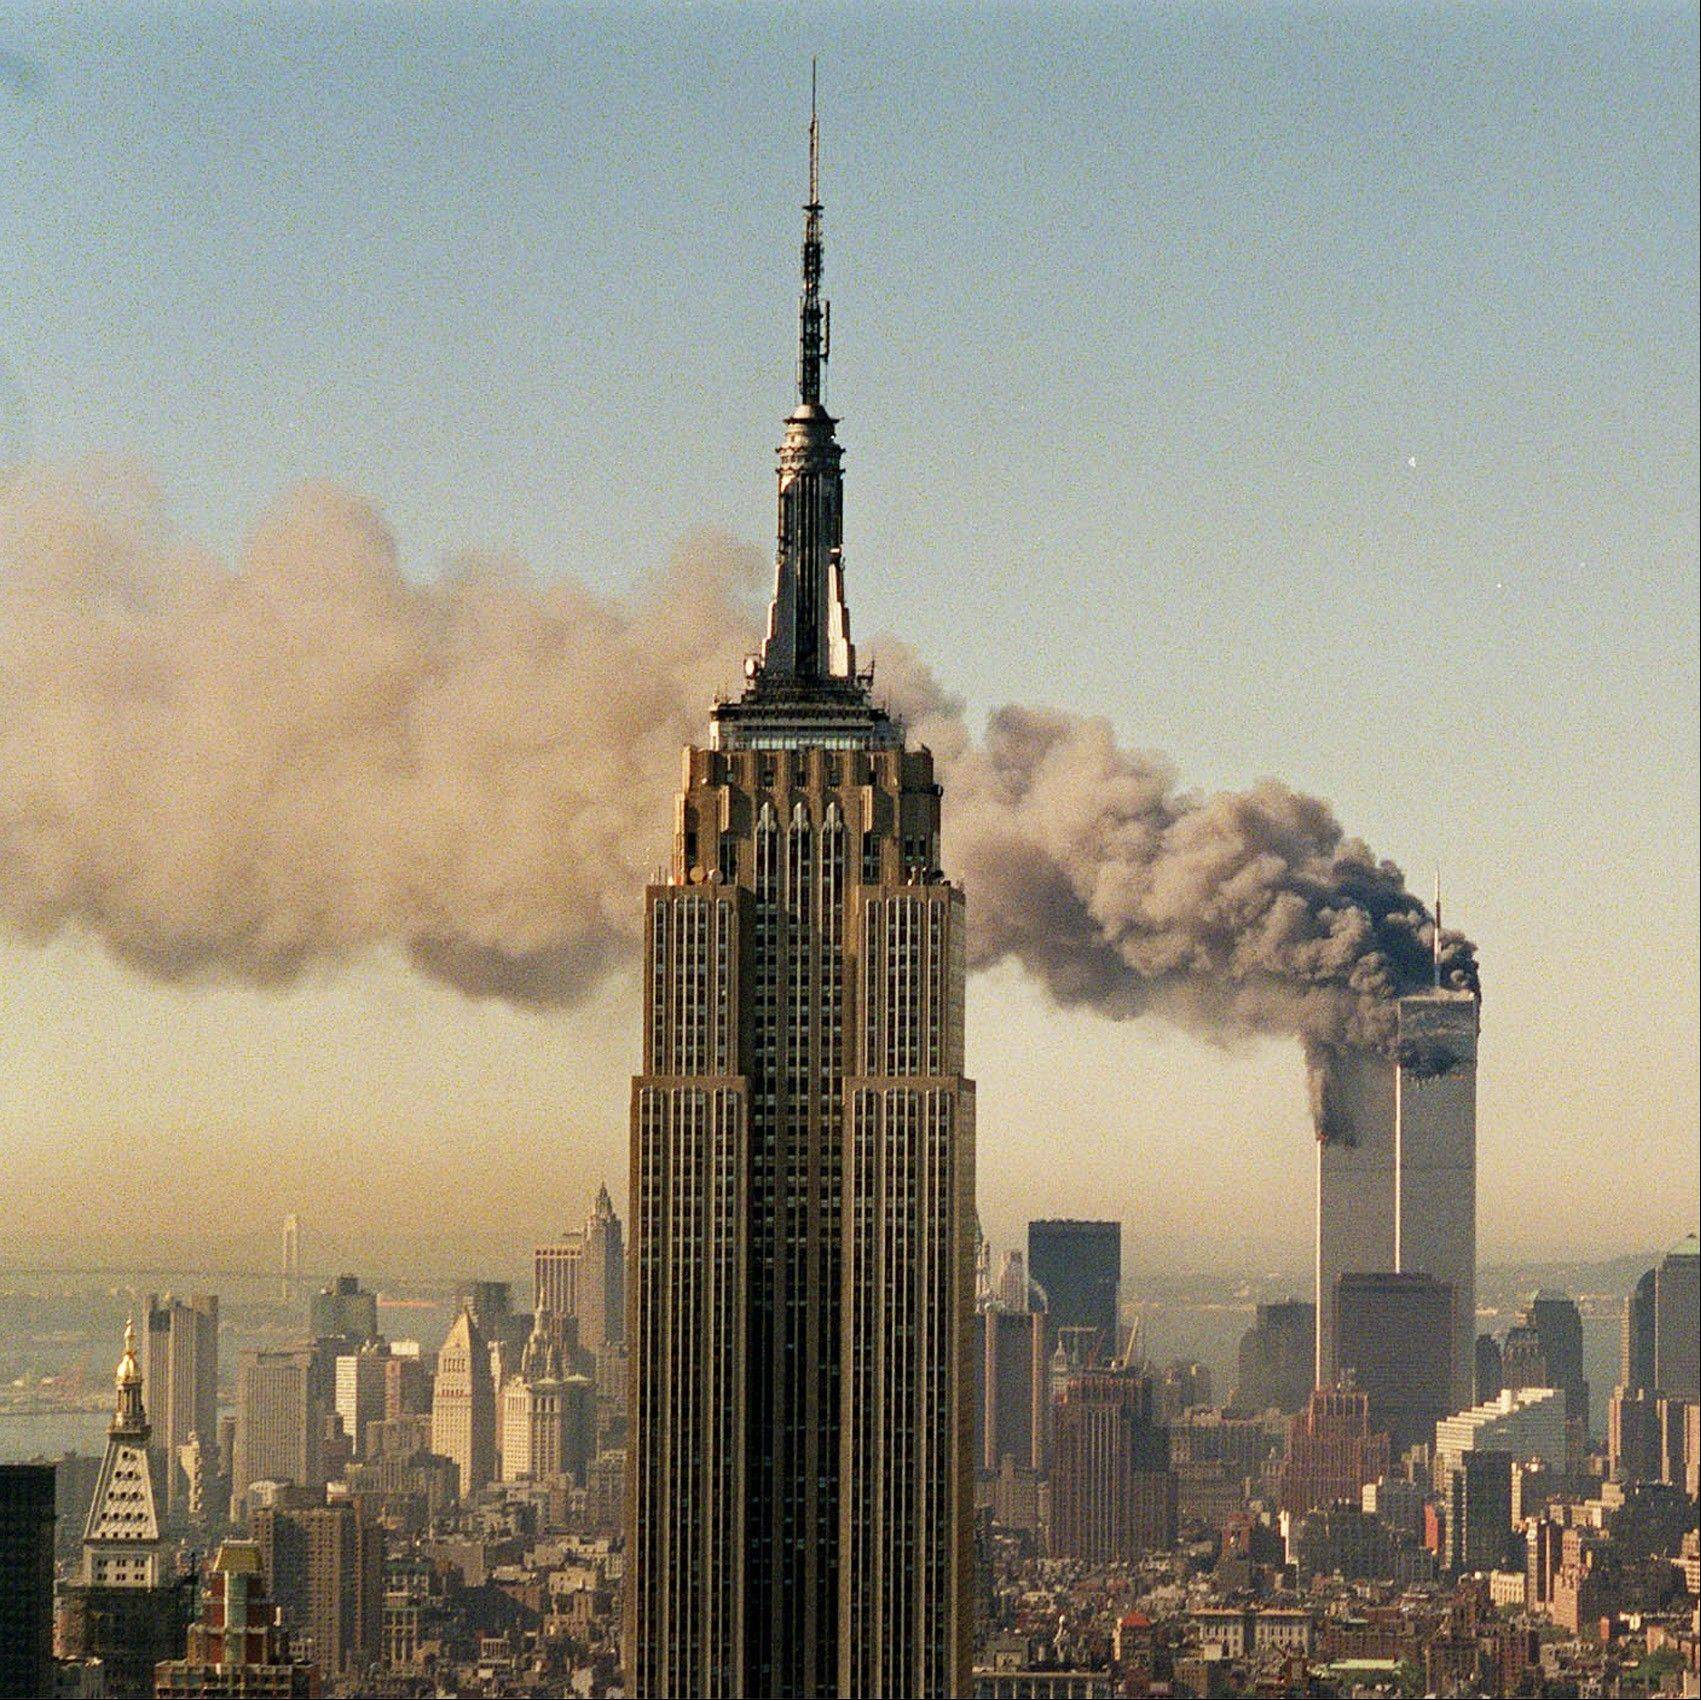 Marty Lederhandler shot this photo of the twin towers of the World Trade Center burning behind the Empire State Building in New York on Sept. 11, 2001.